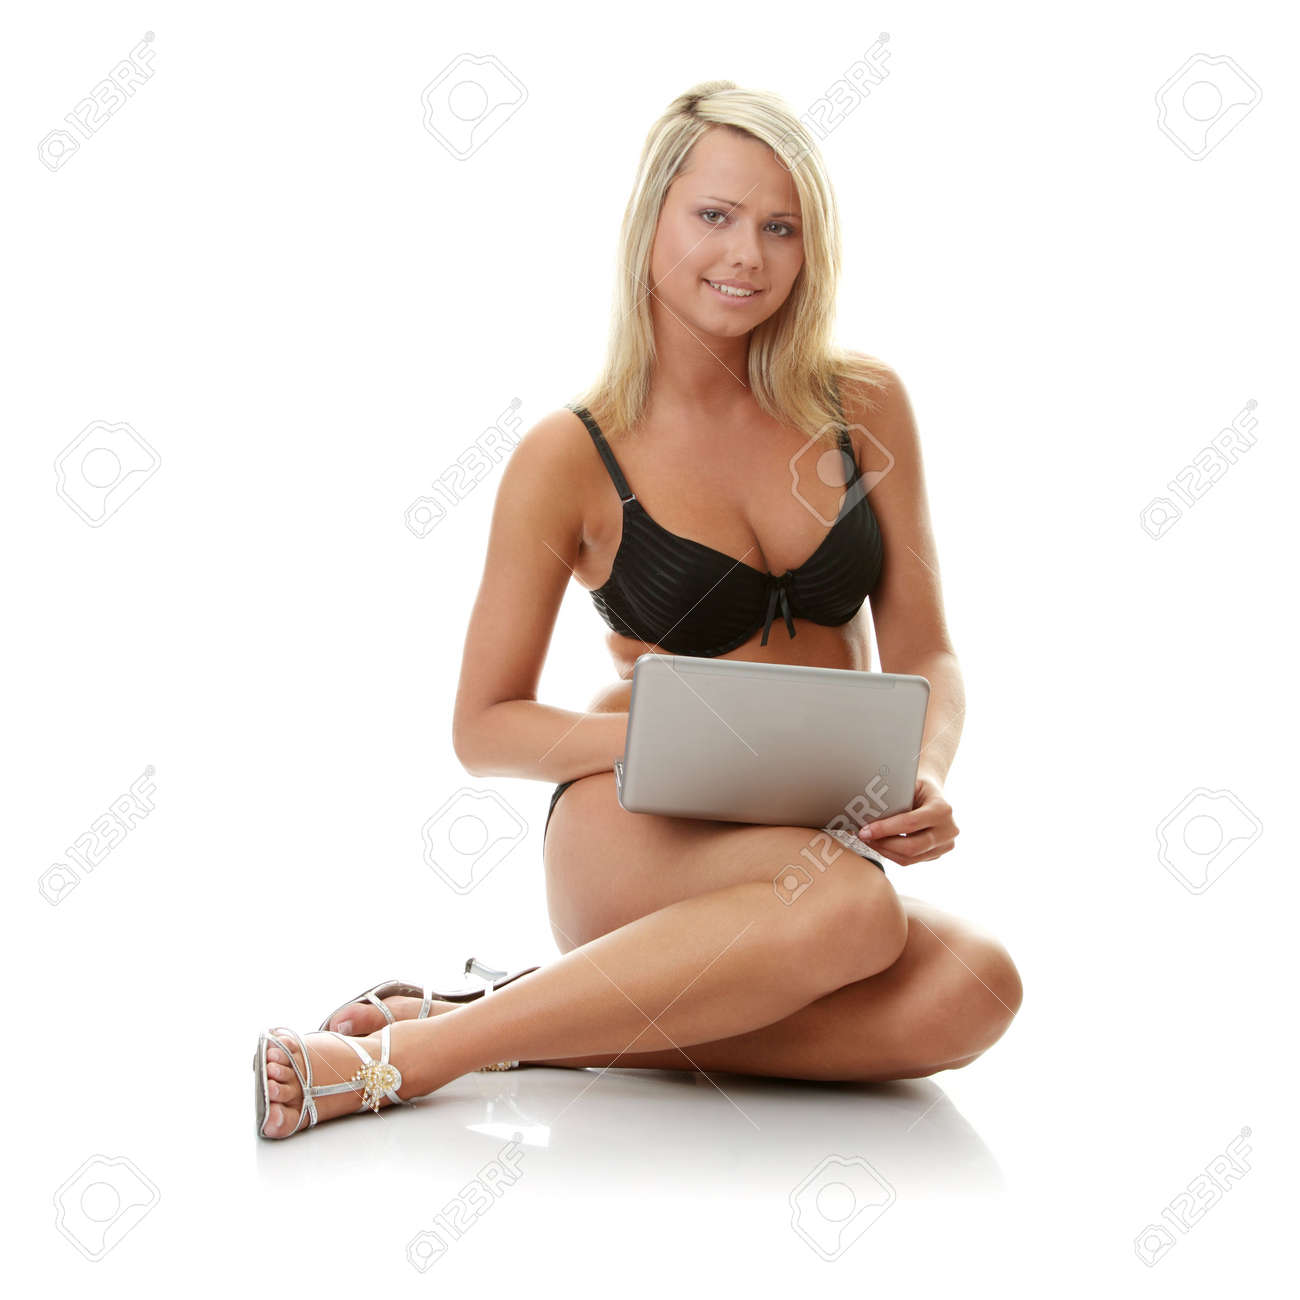 How To Write A Great First Email Online Hookup